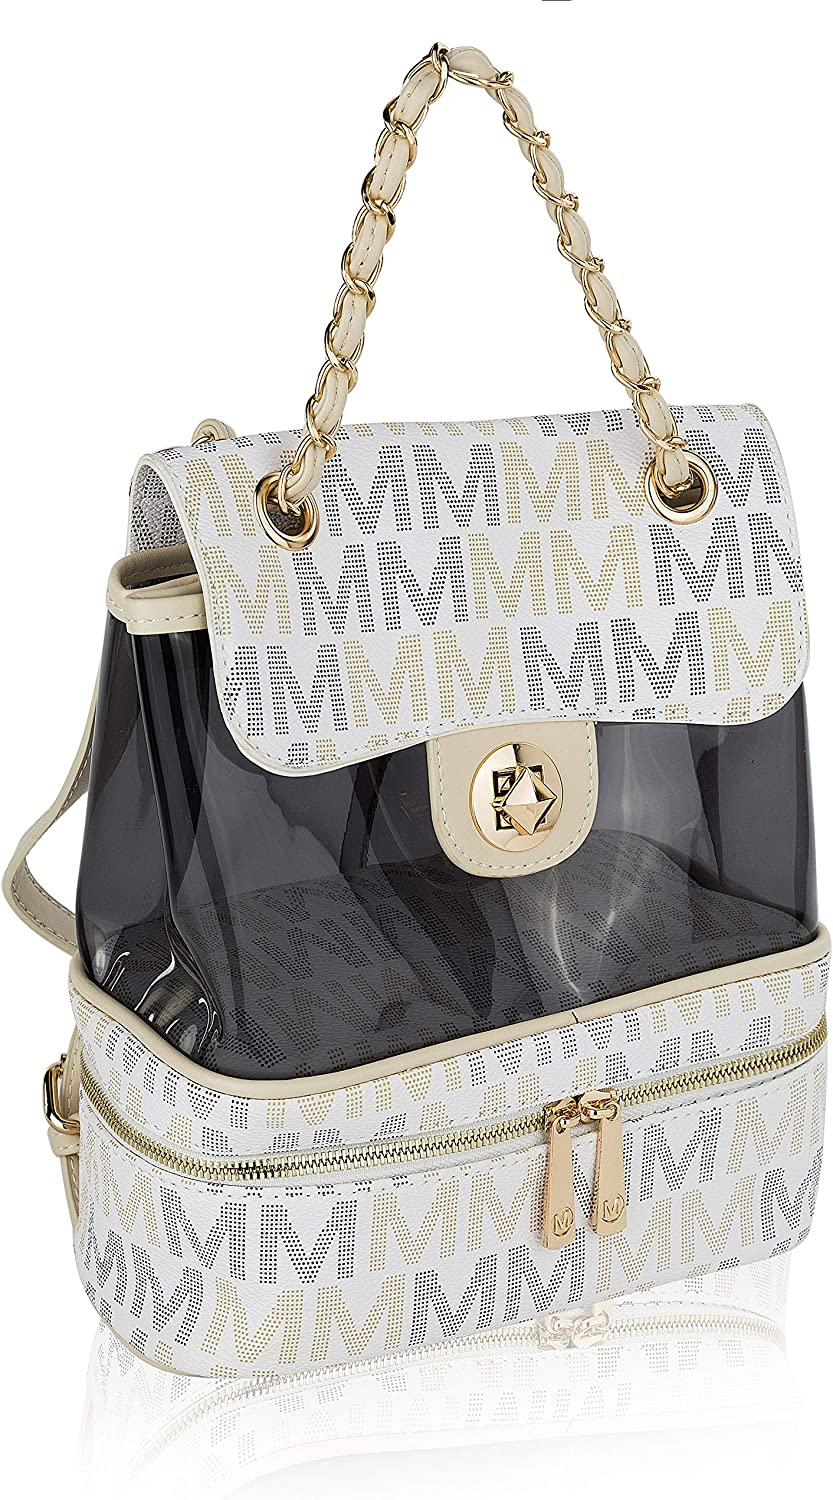 Judith M Signature Backpack Clear front pocket by Mia K. Farrow